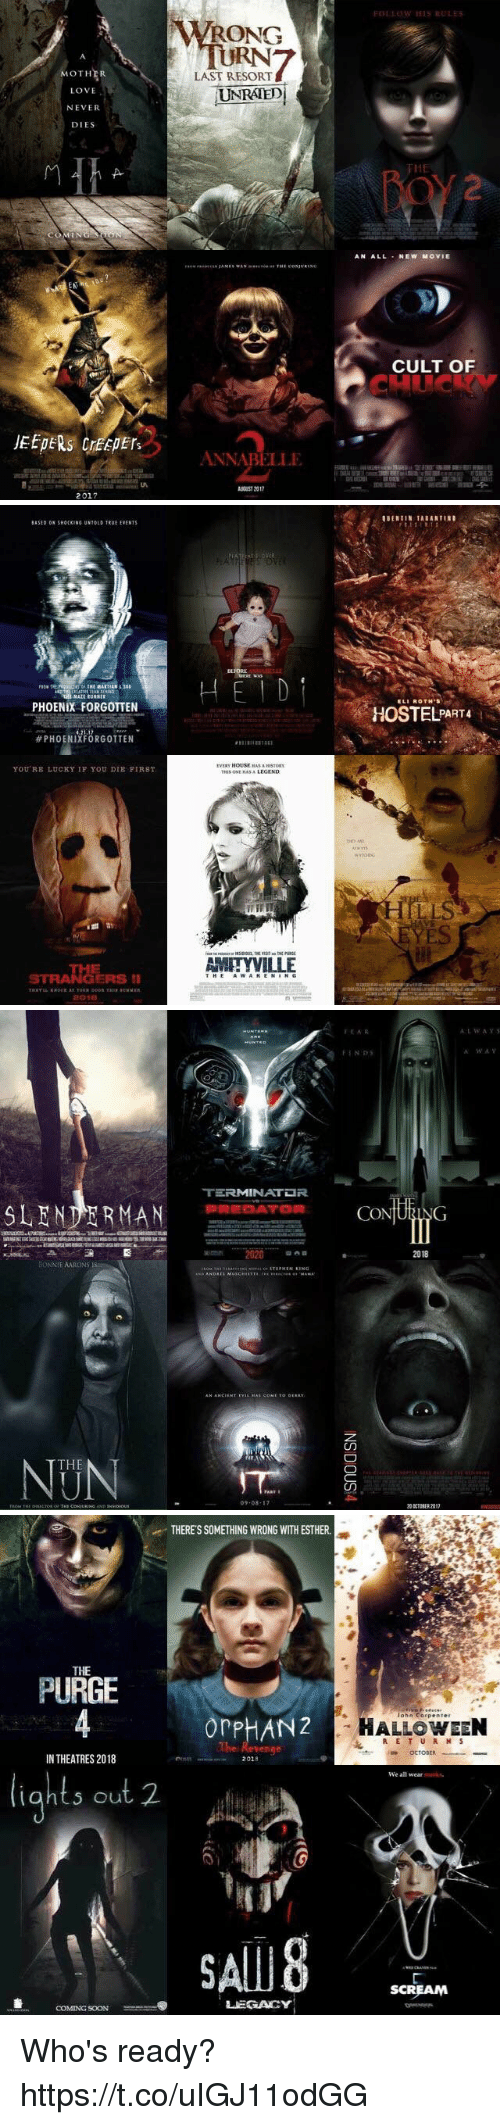 creepers: MOTHER  LOVE  NEVER  DIES  JEEPERS creepers  2017  WRONG  LAST RESORT  UNRATED  ANNABELLE  FOLLOW HIS RULES  AN ALL NEW MOVIE  CULT OF   PHOENIX FORGOTTEN  PHOENIXFORGOTTEN  YOU RE LUCKY IF YOU DIE FIRST.  STRANGERS II  2001E  BEFORE  EVER HOUSE HASAHISTORY  AMITYVILLE  ROTH's  HOSTEL PART4   TERMINATDR  SLENDER MAN PREDATOR  2020  BONNIE AARONS  THE  09 08  It AR  CO  ING  20 CIOBER 2017  A:L w A v 5  A WAV   THERESSOMETHING WRONG WITH ESTHER.  THE  PURGE  or PHANZ  IN THEATRES 2018  2018  S out 2.  LEGACY  COMING SOON  John Corp enter  HALLOWEEN  R E T U R N S  OCTODER  We all wear  SCREAM Who's ready? https://t.co/uIGJ11odGG